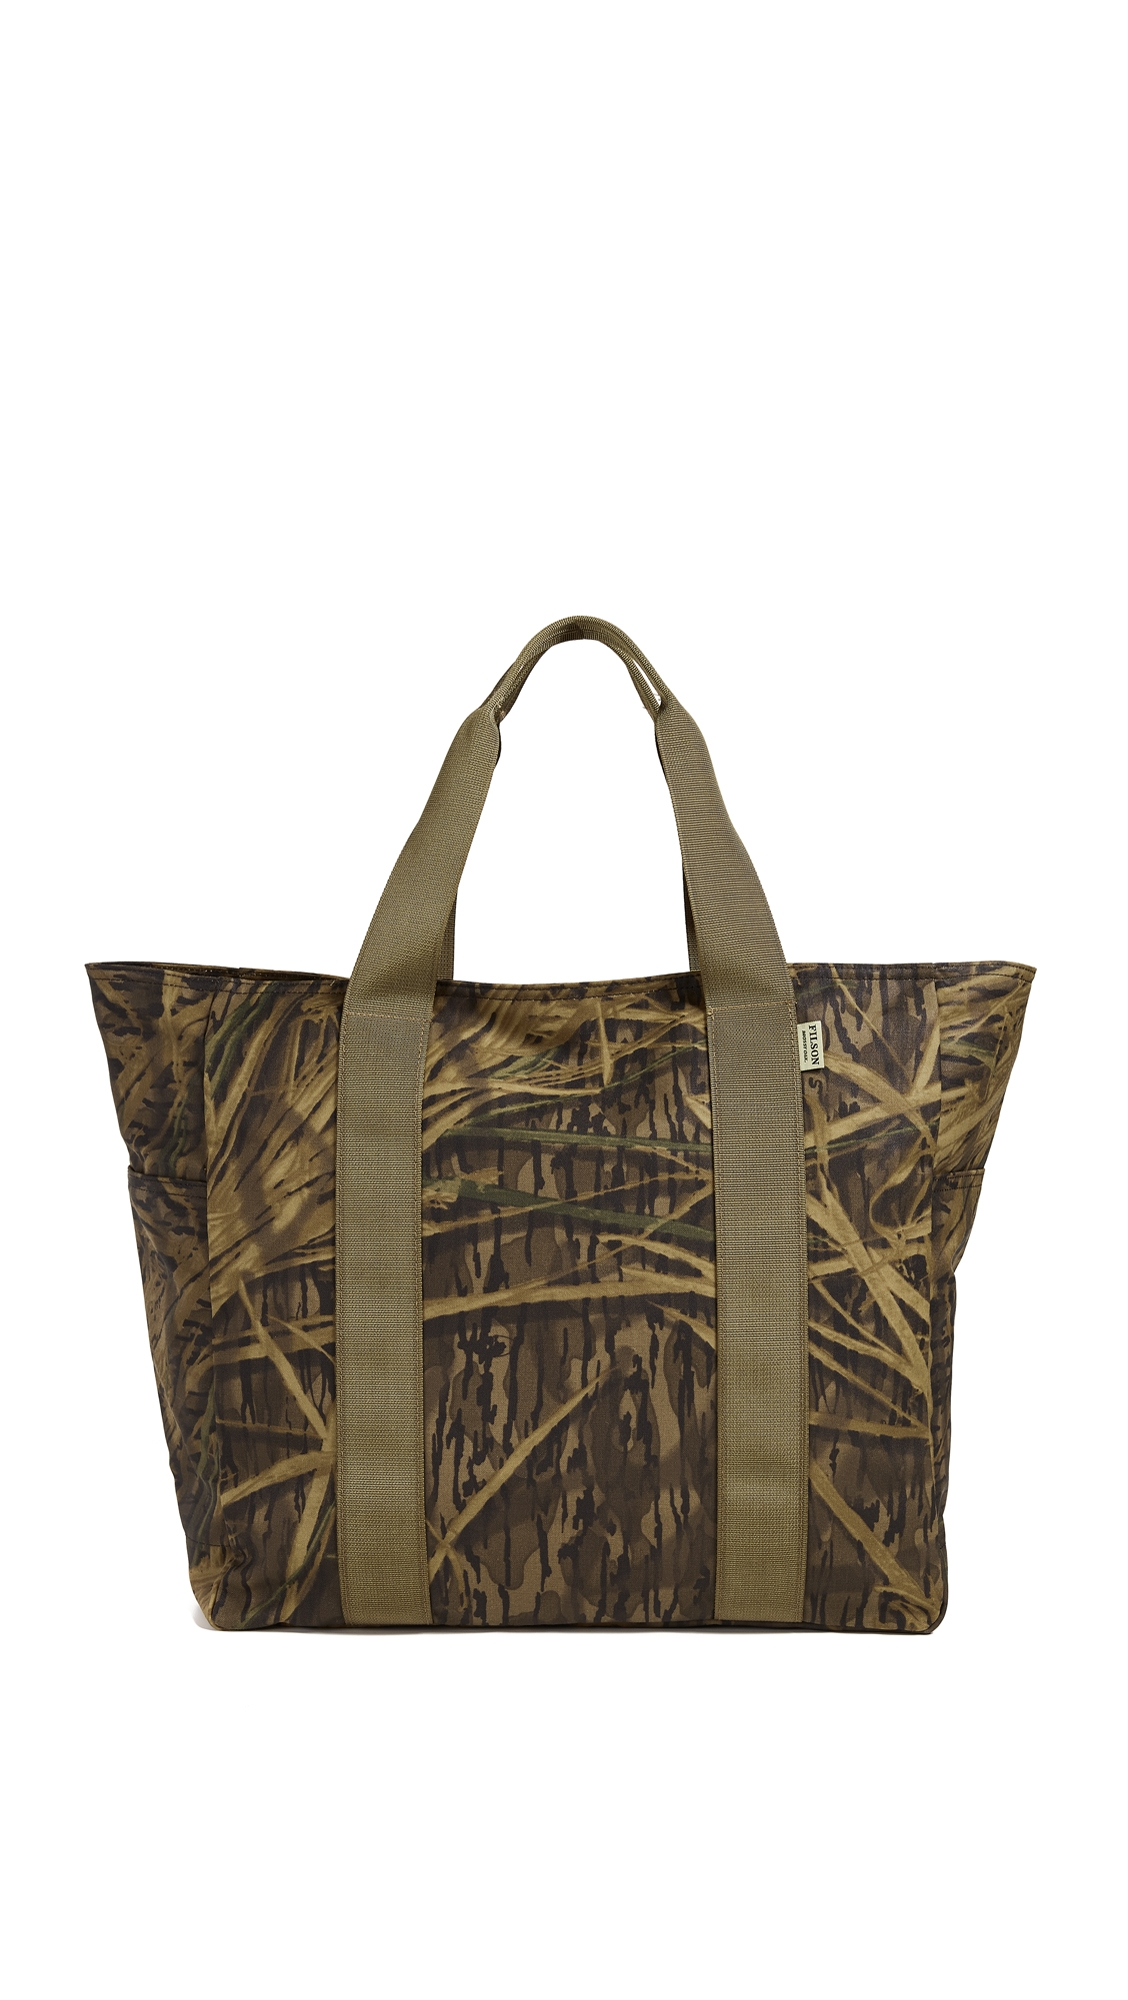 GRAB N GO LARGE TOTE BAG